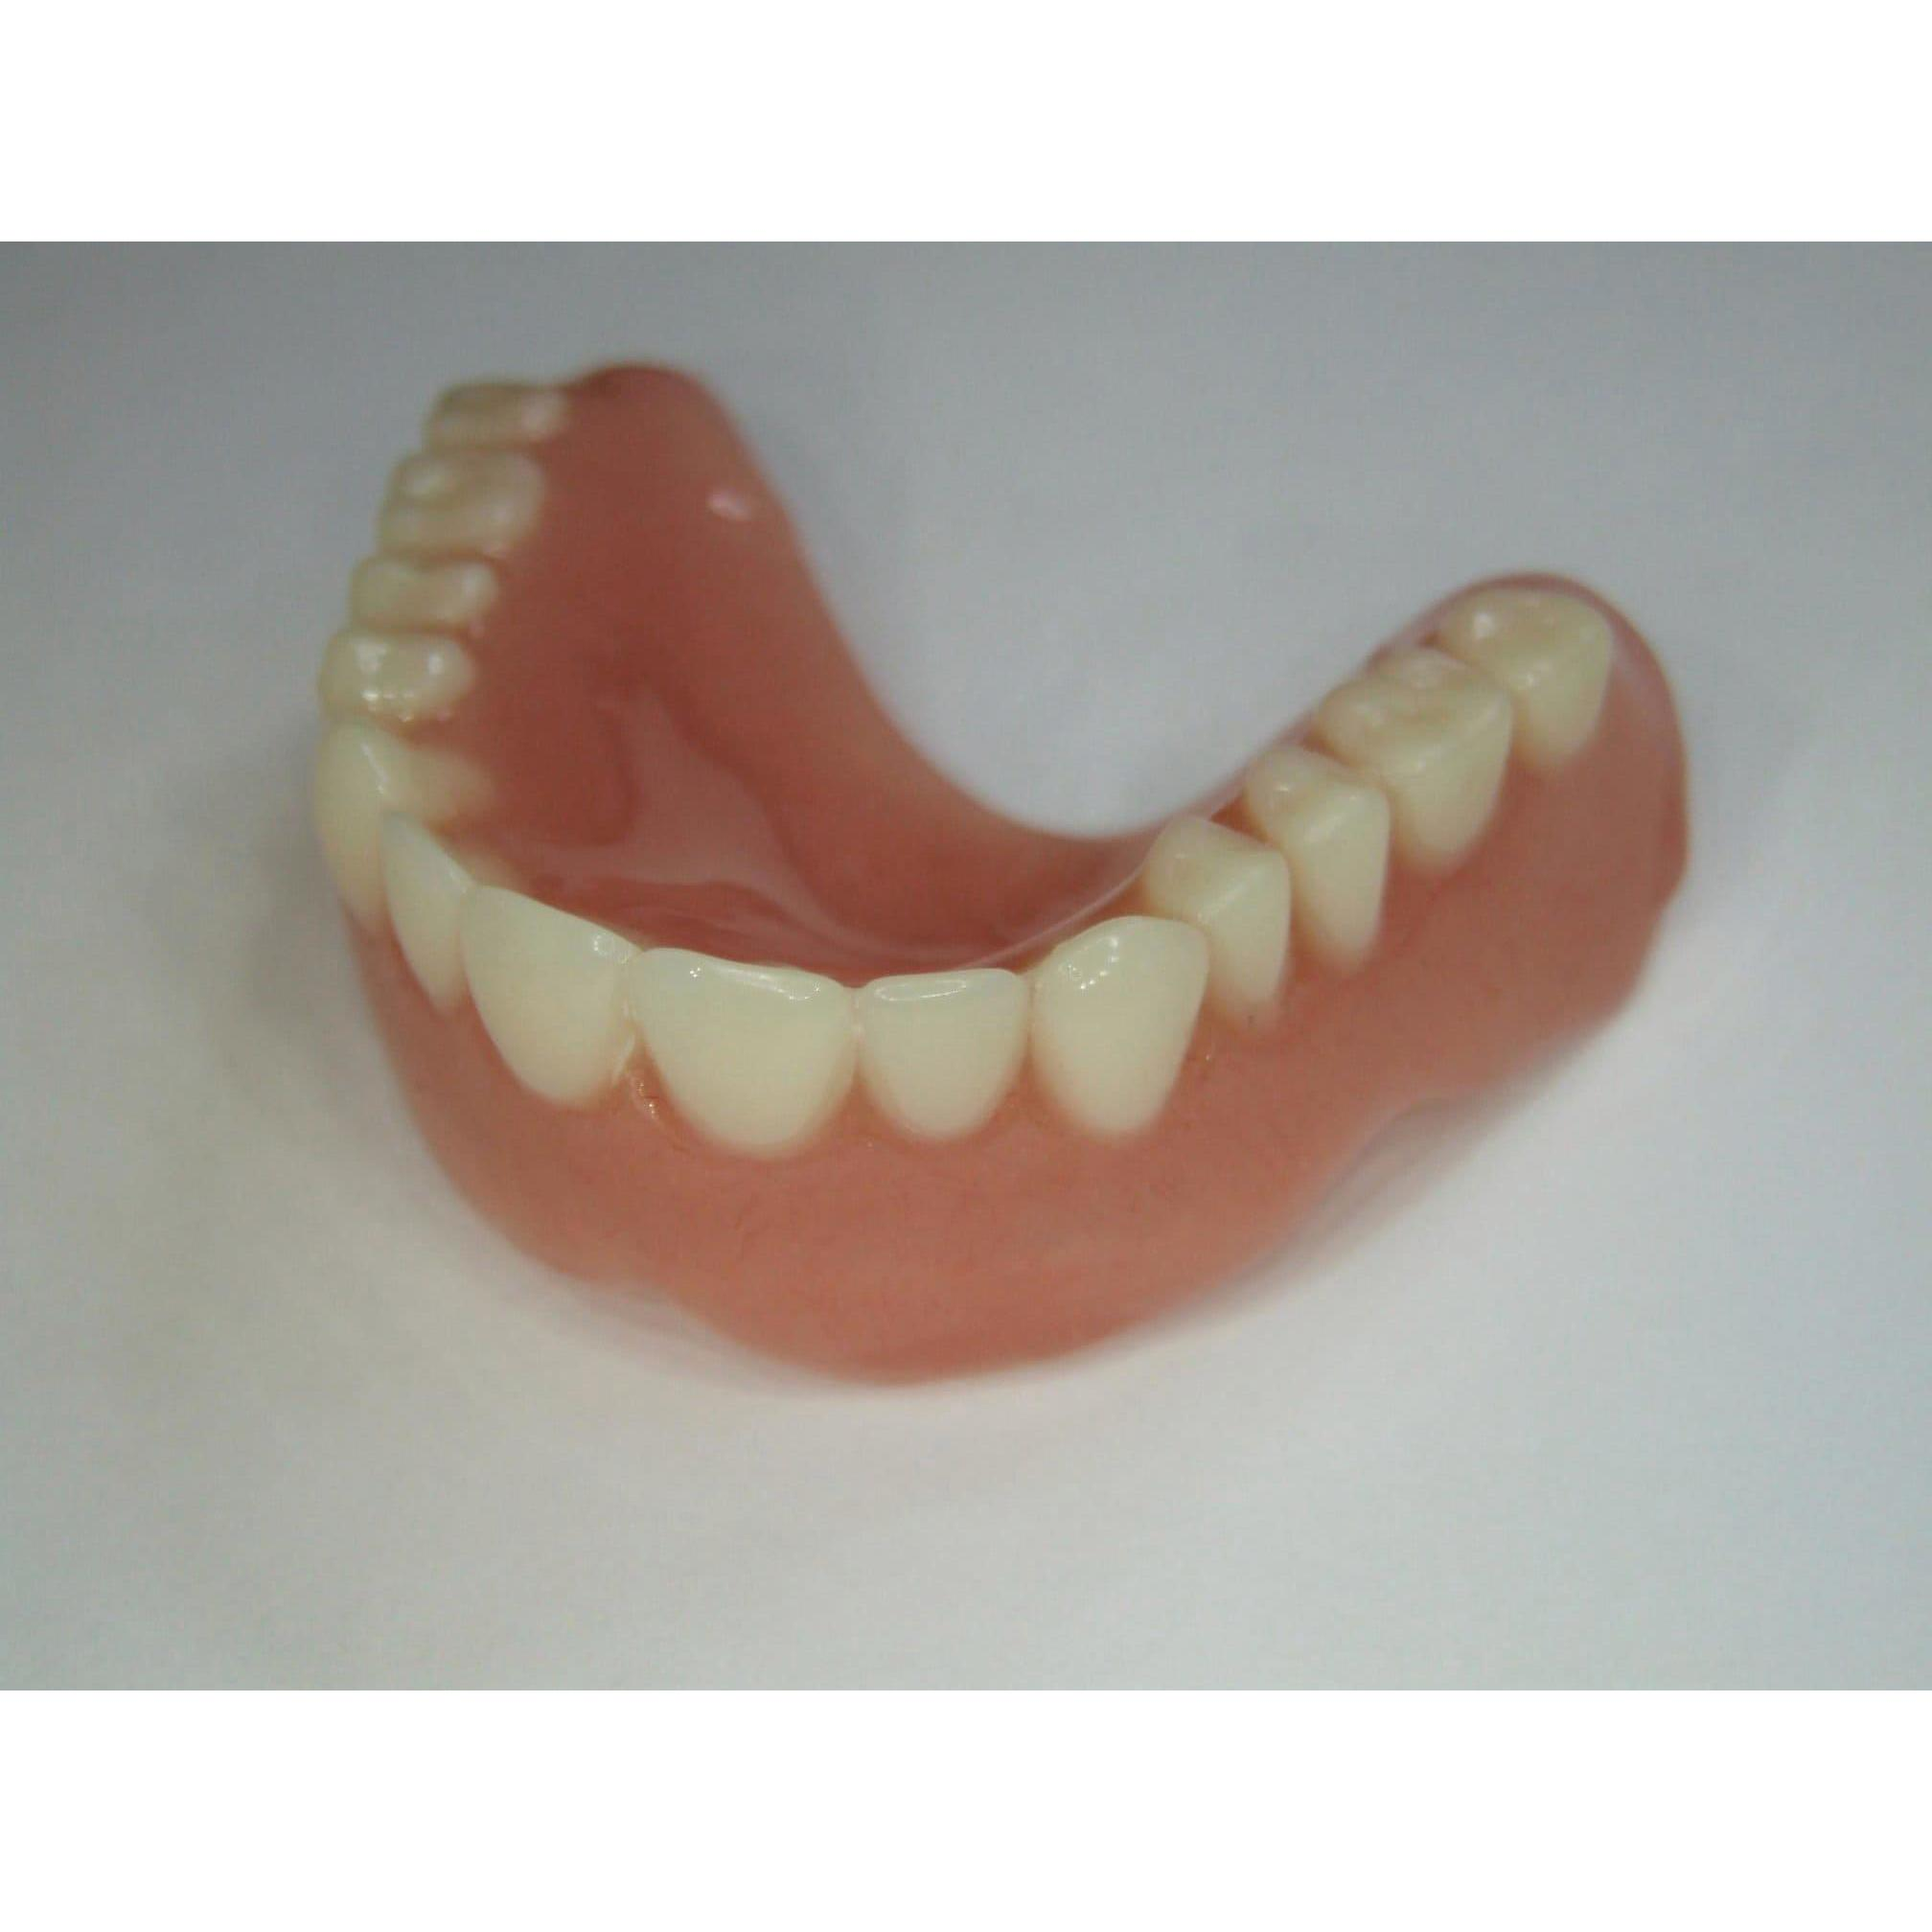 FixmyDenture.co.uk - Sheffield, South Yorkshire S3 8HT - 01142 750097 | ShowMeLocal.com